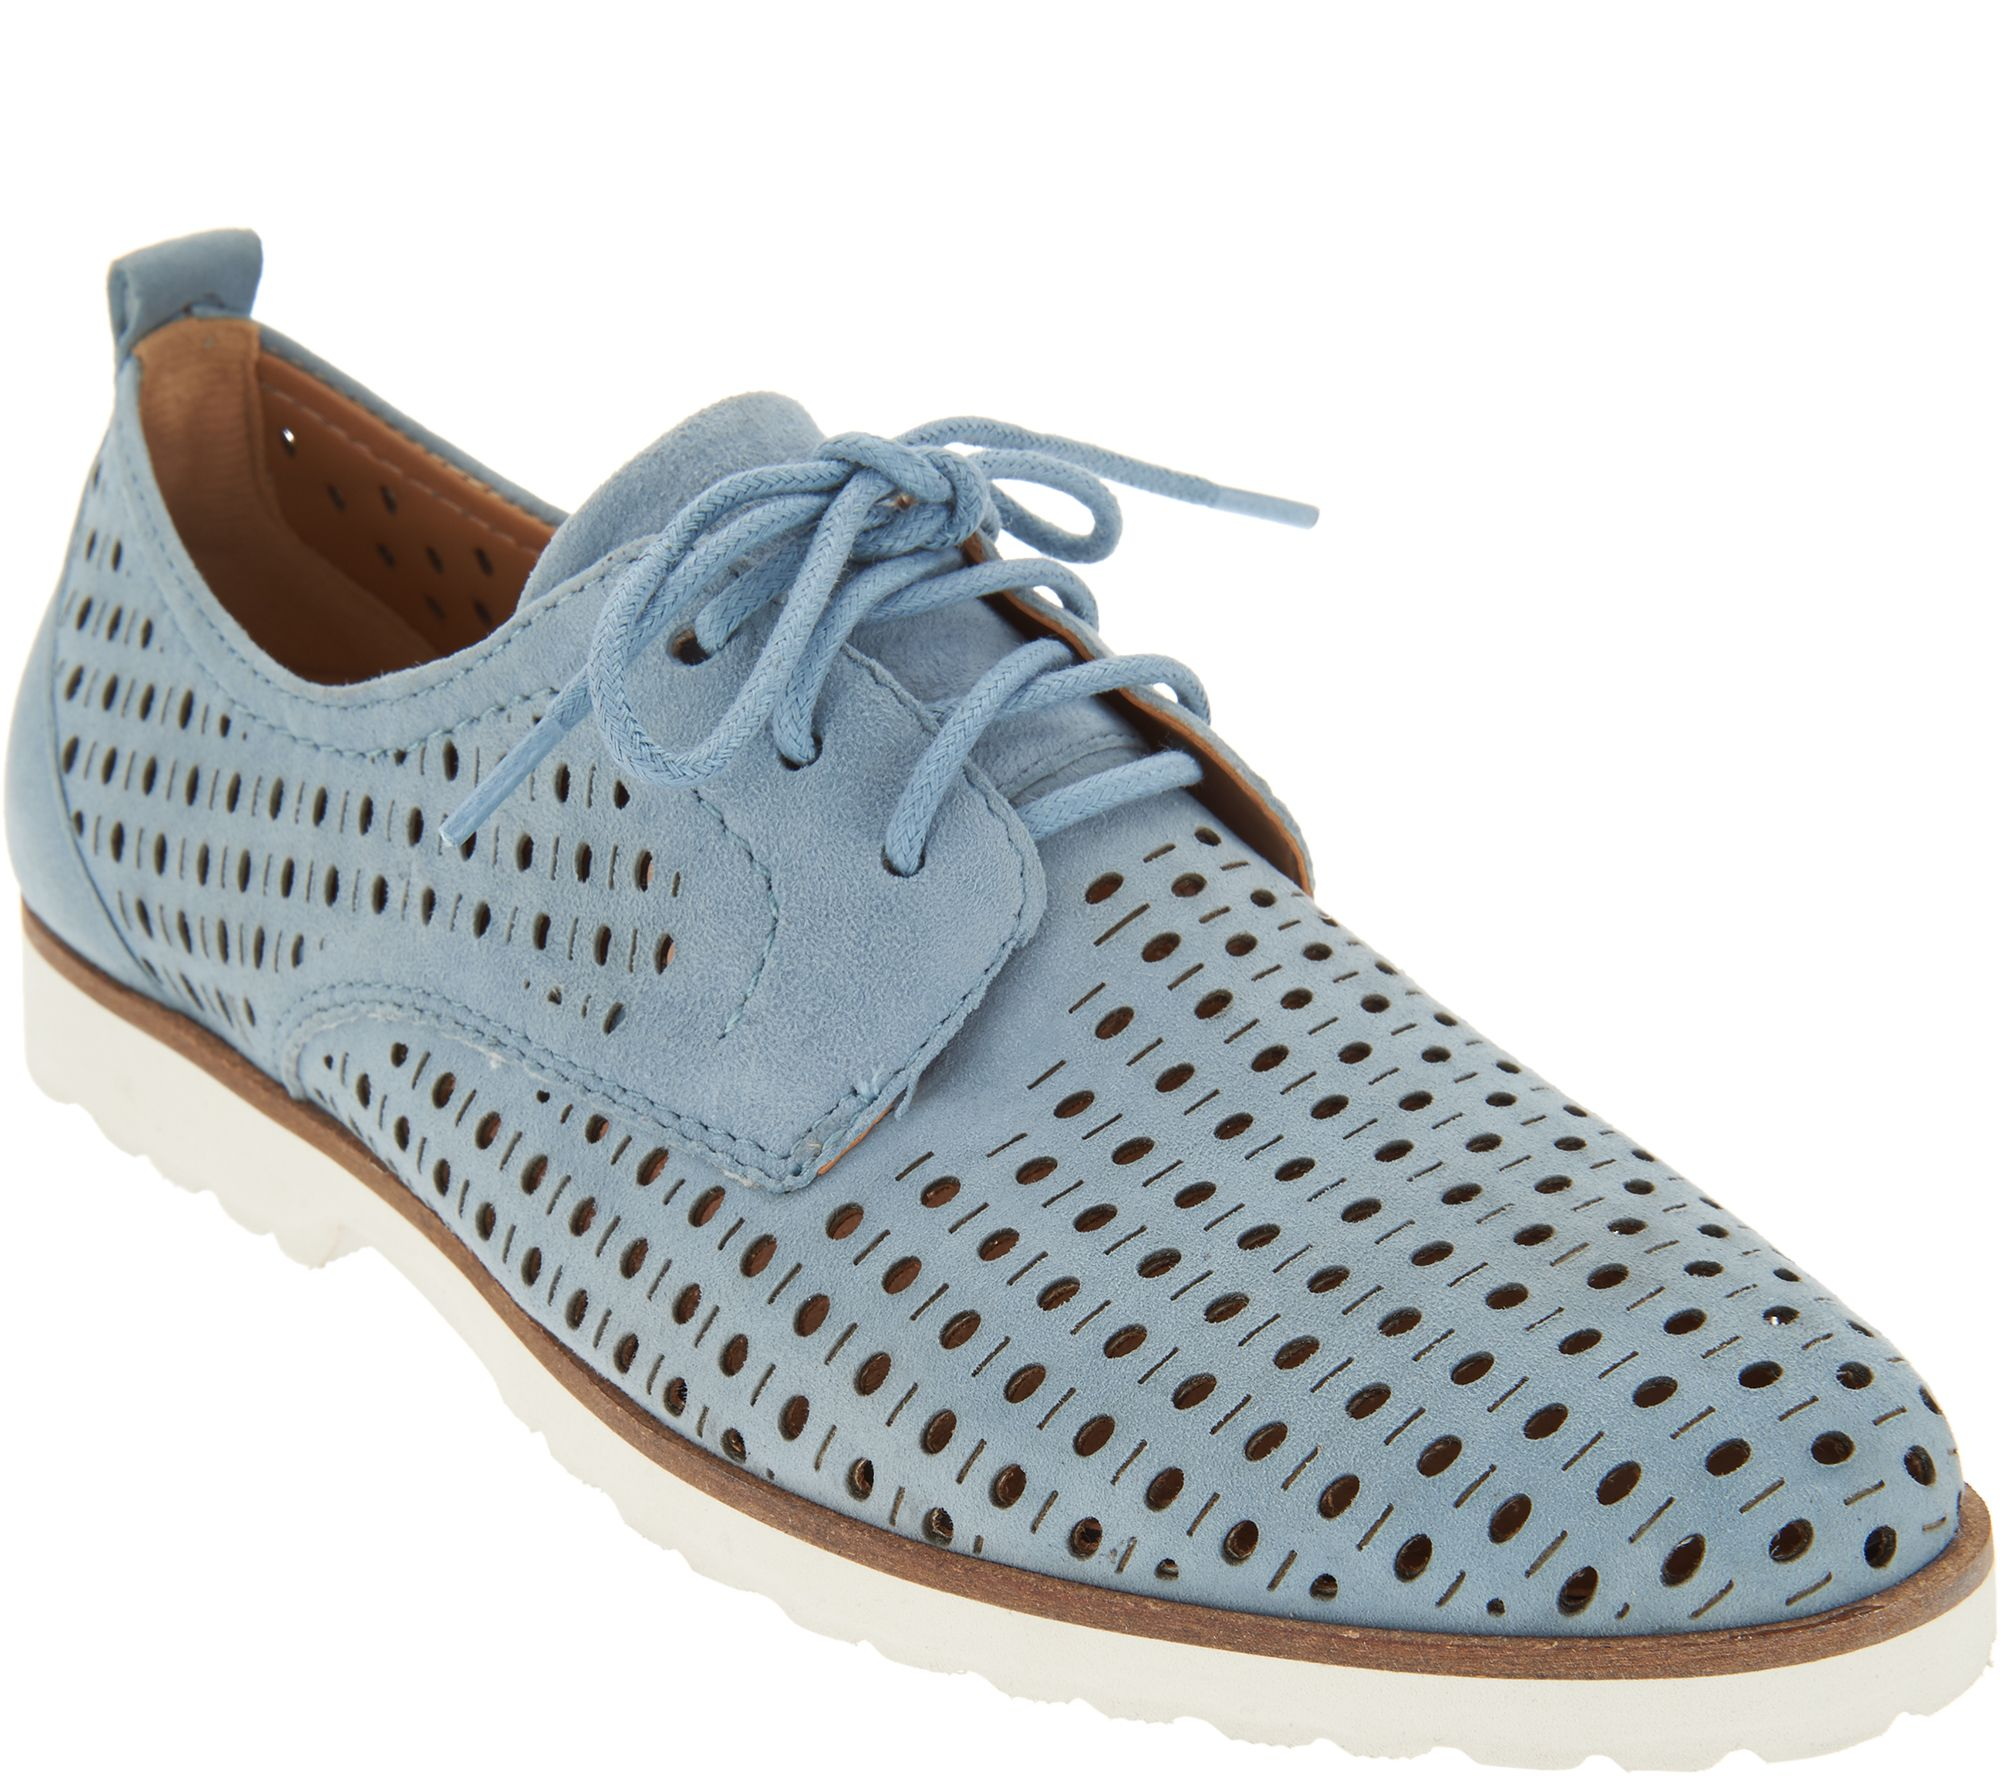 Earth Perforated Leather Lace-up Shoes - Camino sale 2014 unisex extremely sale online pre order wiki online VaV3n0